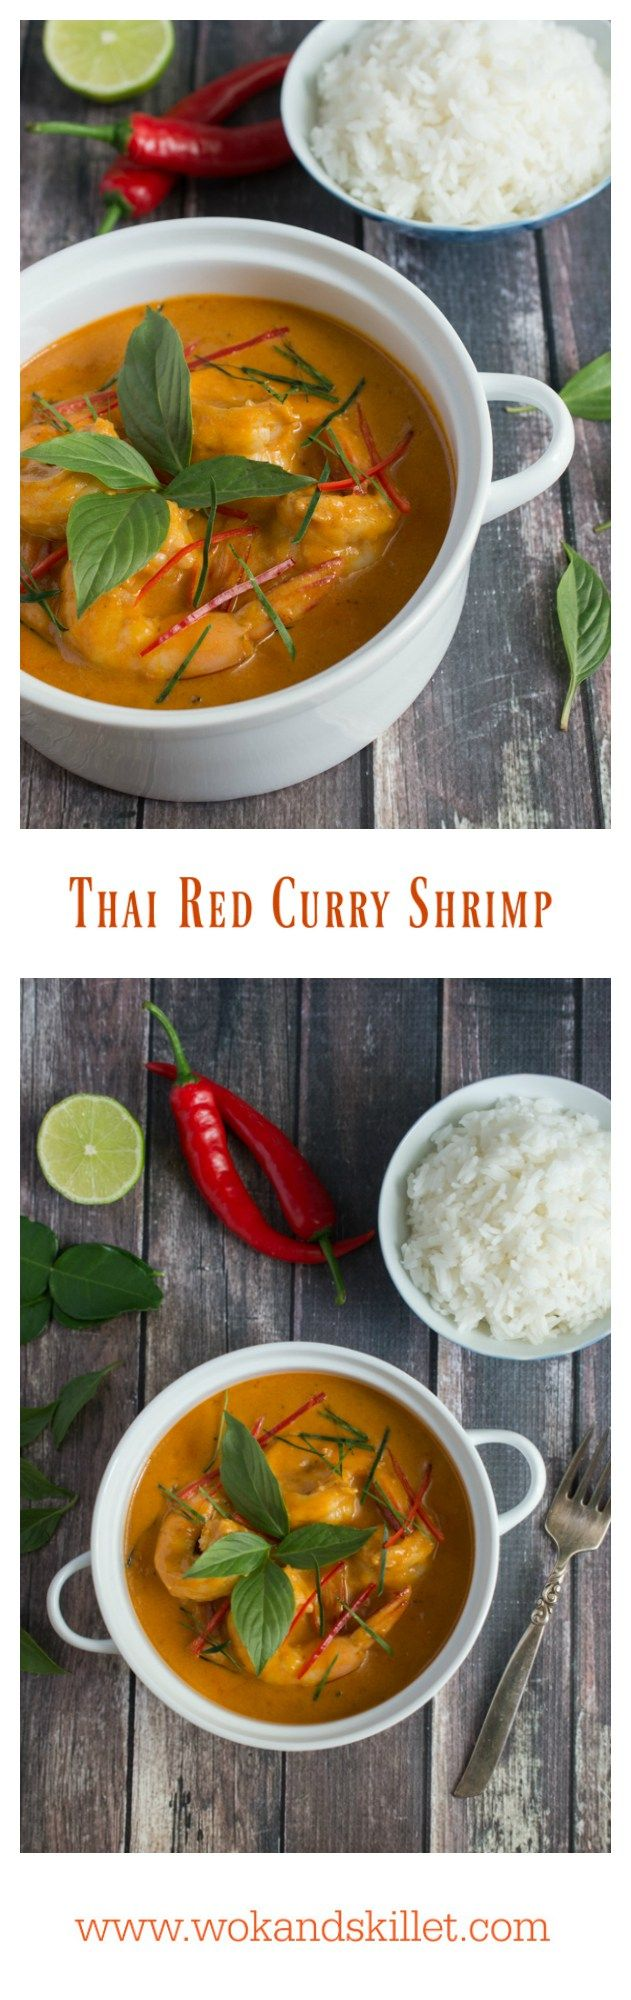 Creamy, silky and incredibly tasty Thai Red Curry Shrimp will be your new go-to dish. It takes just minutes to put together and tastes even better than takeout!